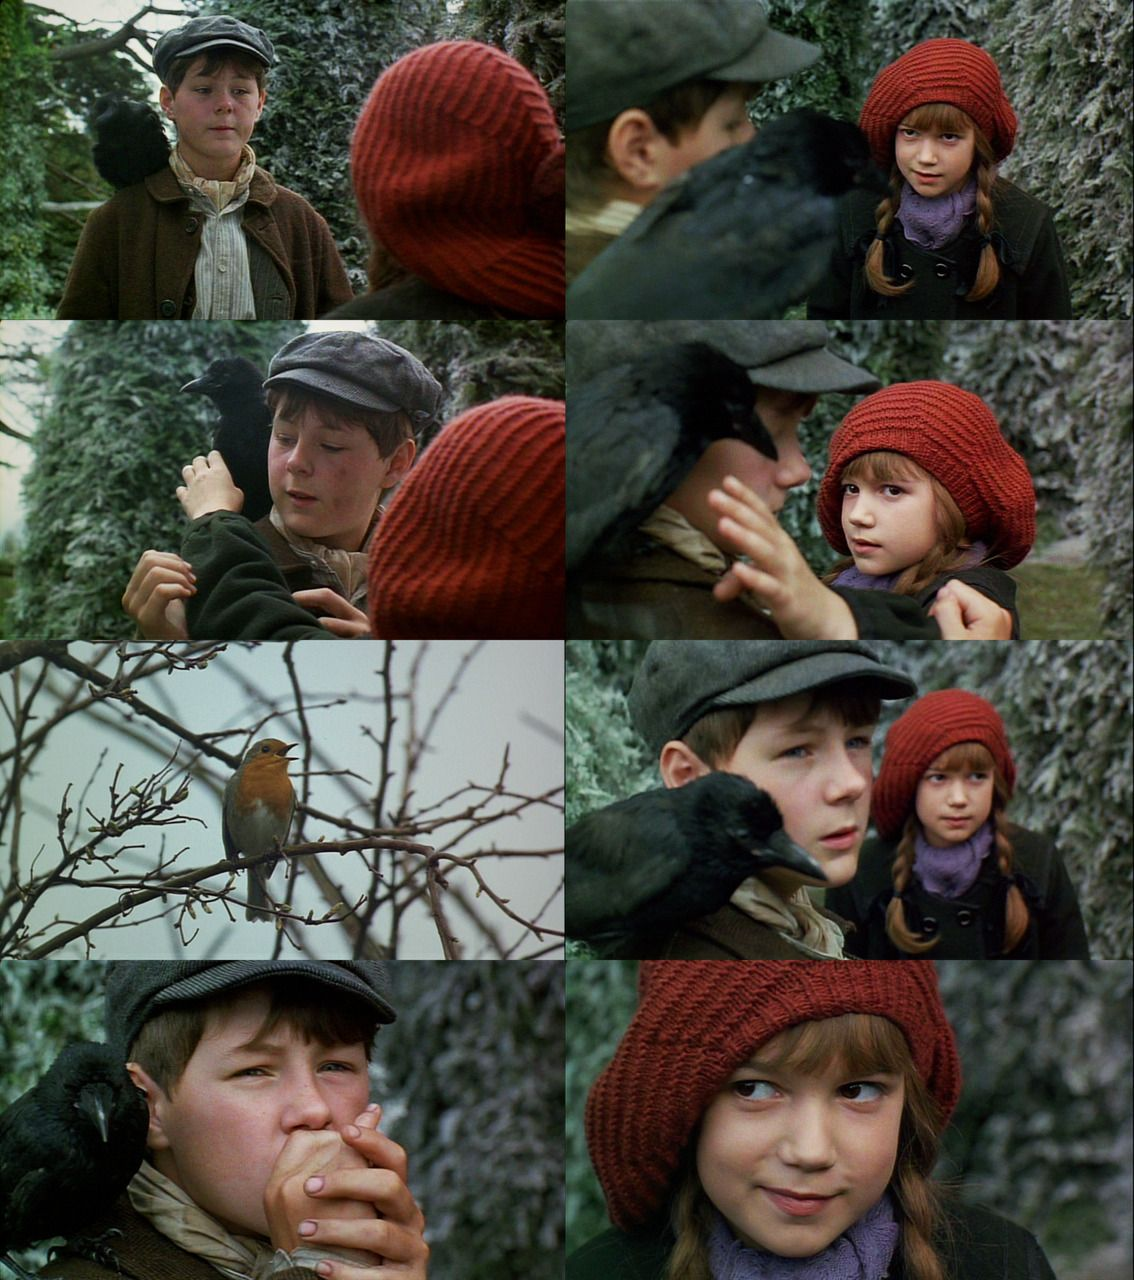 Mary and Dickon from the Secret Garden, gosh I love them